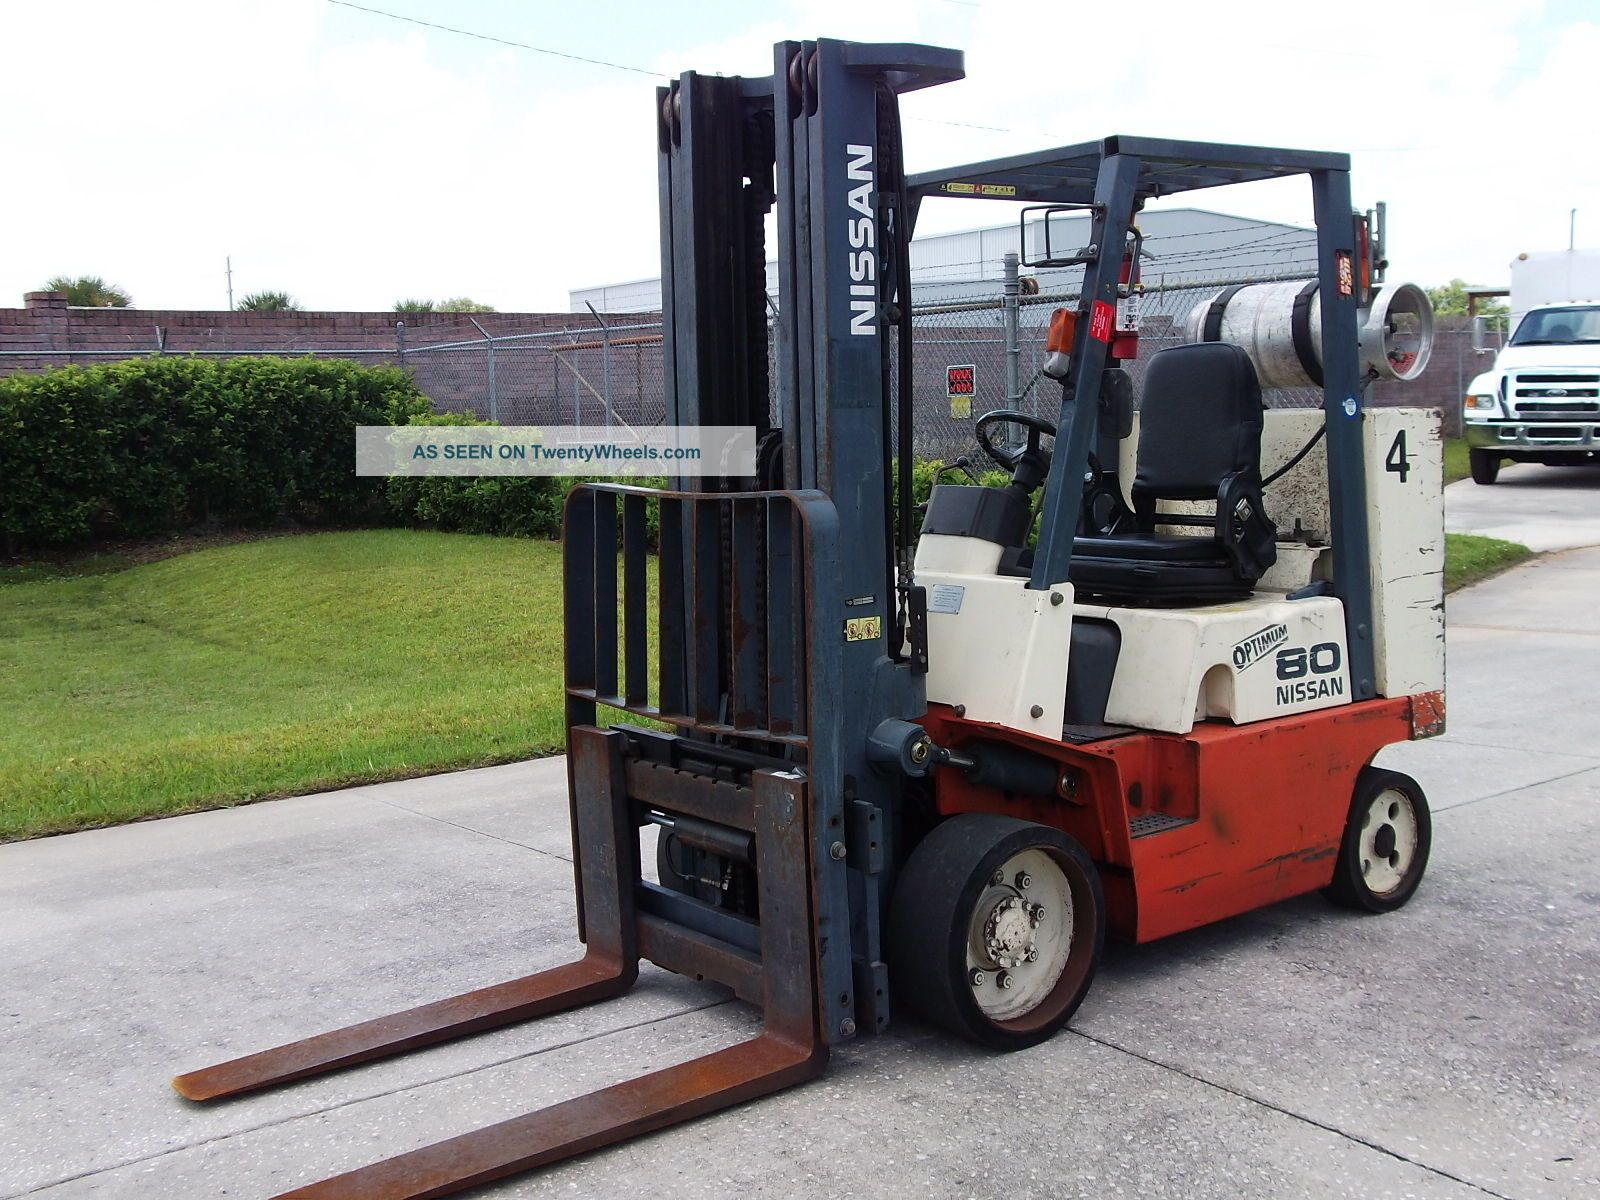 Download Nissan Optimum 50 Forklift Manual